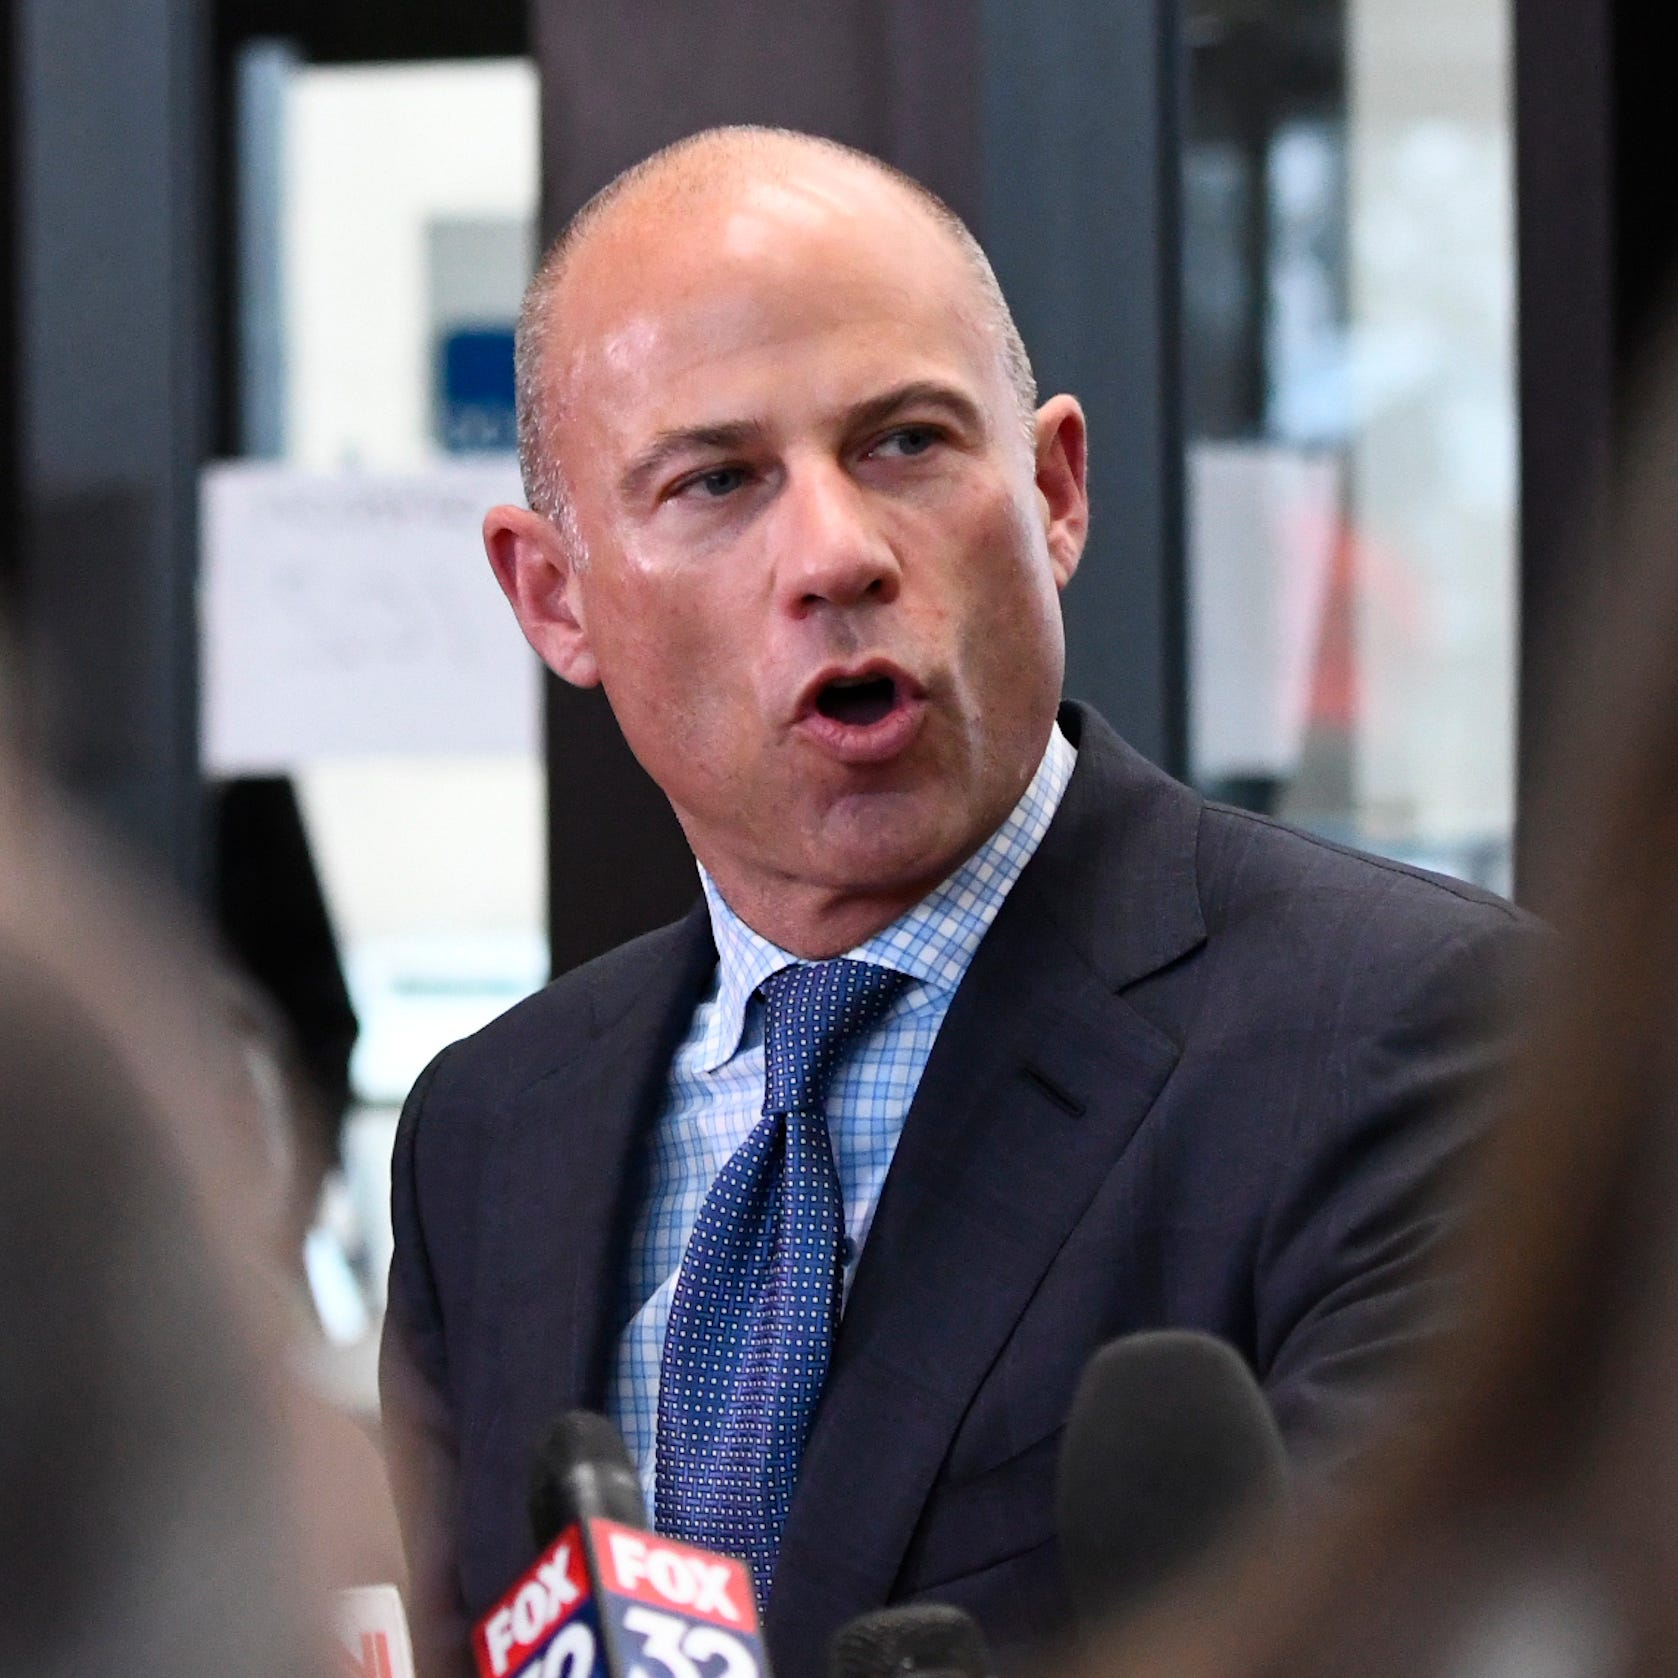 Michael Avenatti: The Peoples Bank in Mississippi was defrauded, prosecutors say